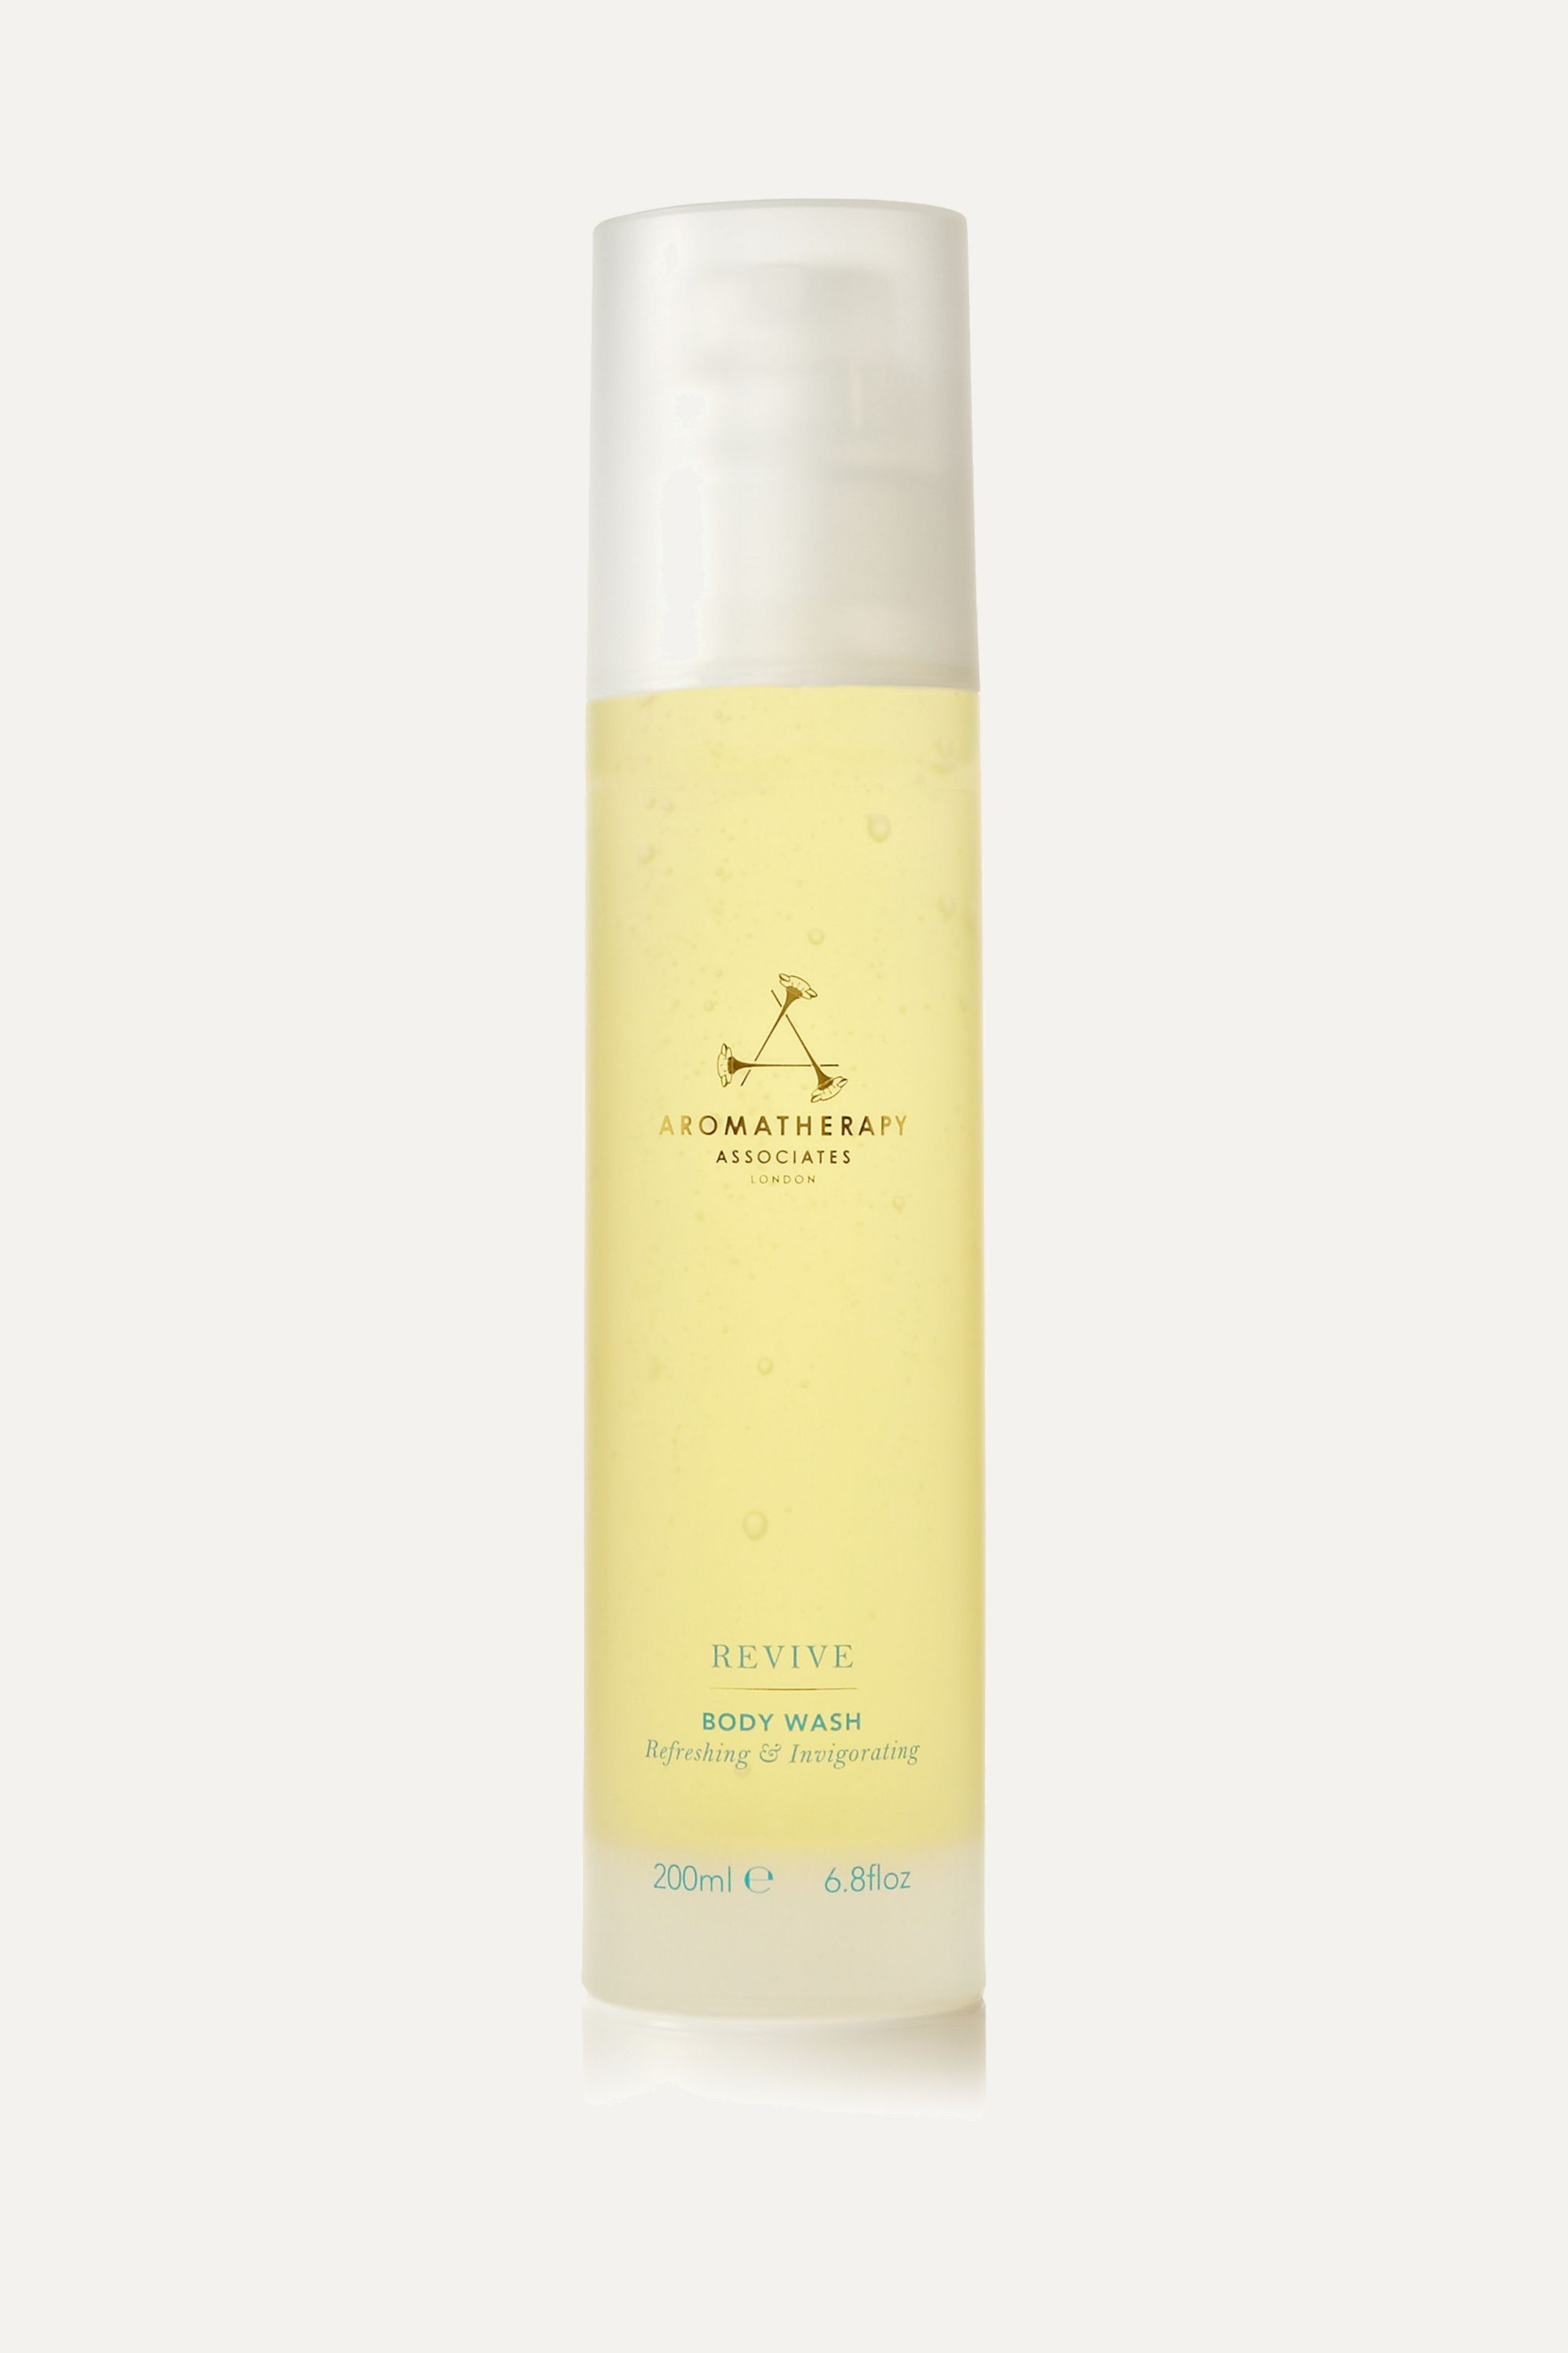 Aromatherapy Associates Revive Body Wash, 200ml